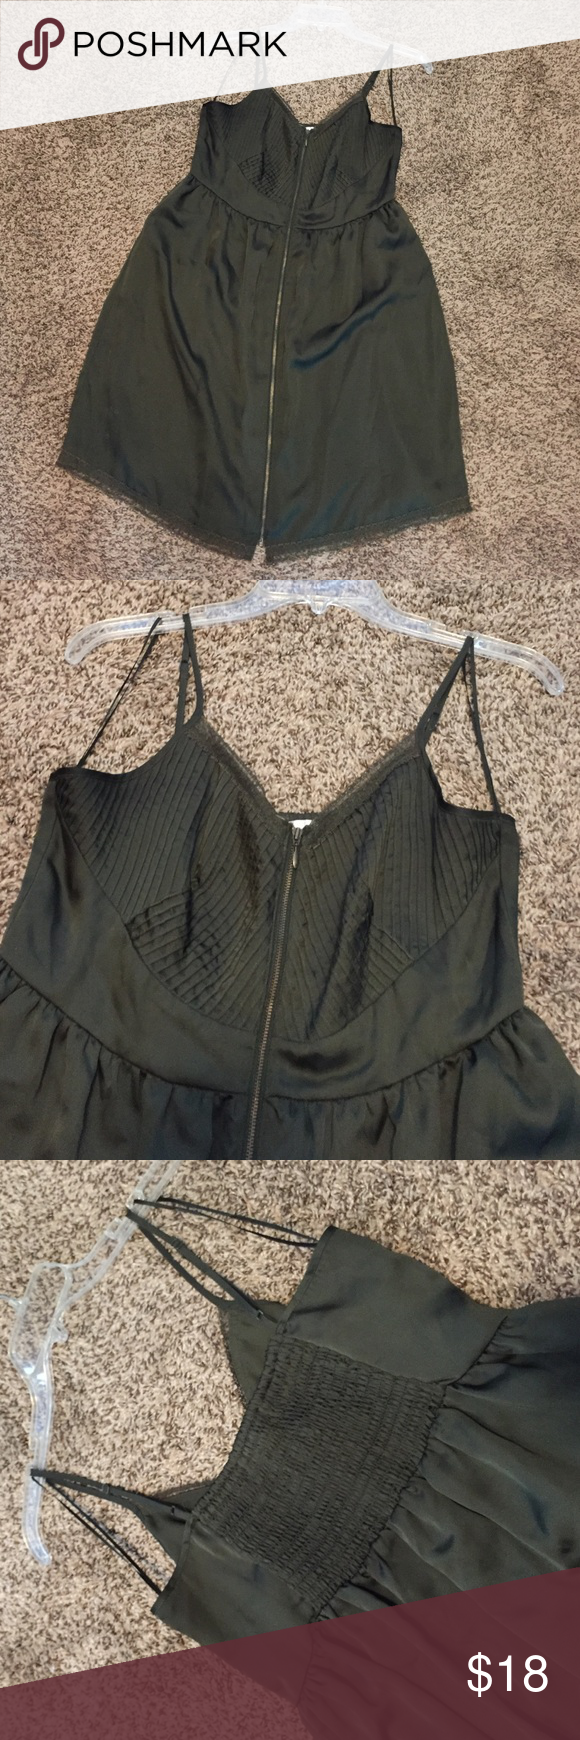 LC Lauren Conrad green slip dress Lauren Conrad olive green slip dress with lace trim and stretchy back. Zips all the way down the front. Fully lined, adjustable spaghetti strap. Size 10, fits TTS! LC Lauren Conrad Dresses Midi